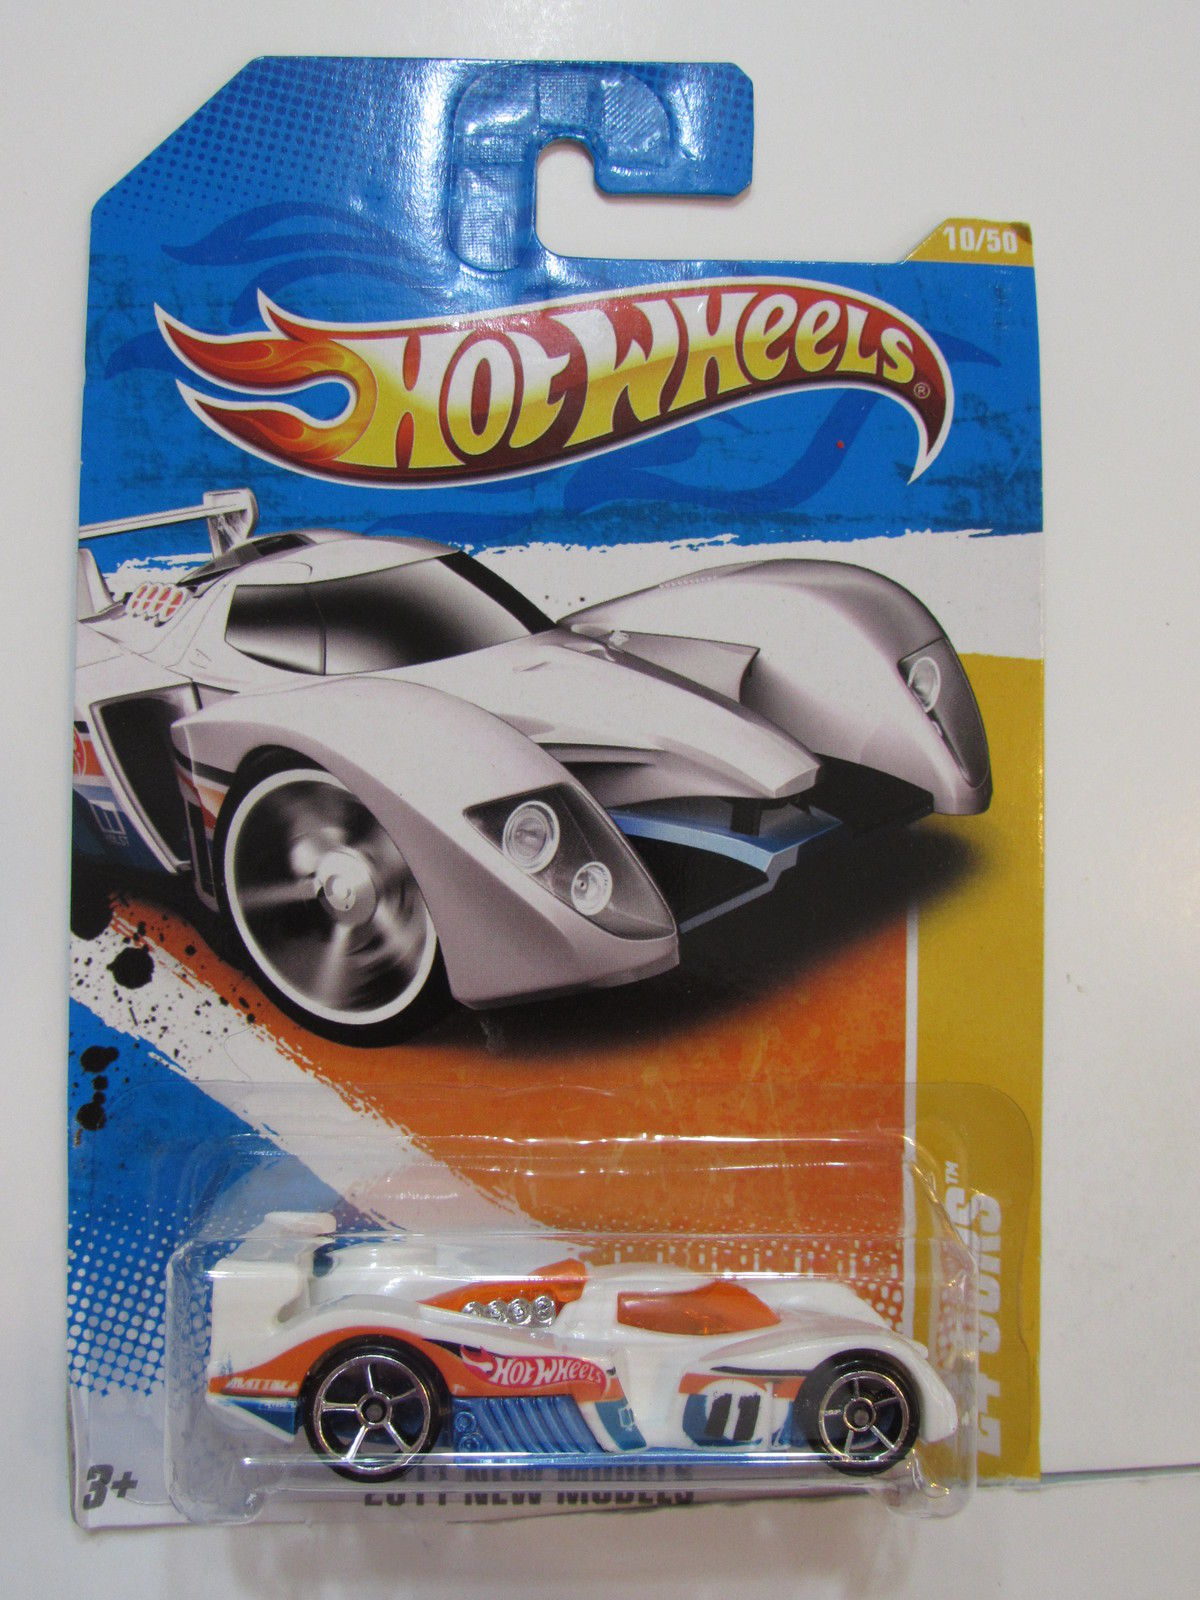 HOT WHEELS 2011 NEW MODELS #10/50 24 OURS WHITE